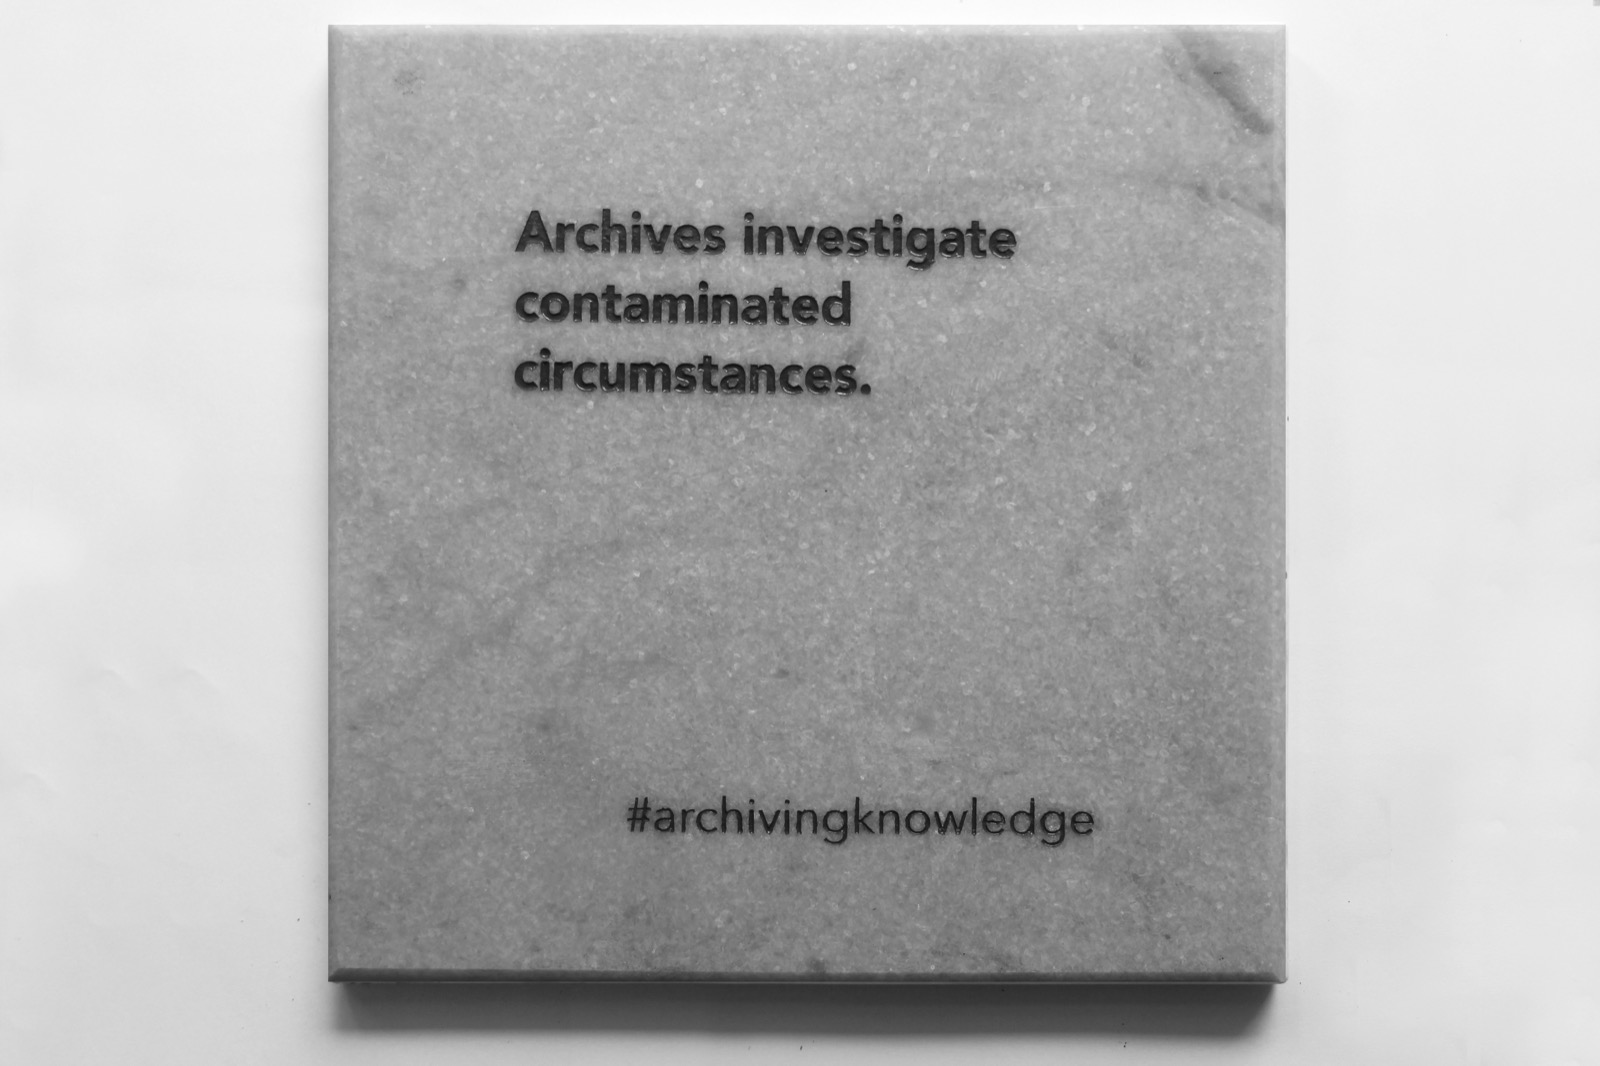 Archives investigate contaminated circumstances, From the series: Archiving Knowledge, hand engraved marble, 2018